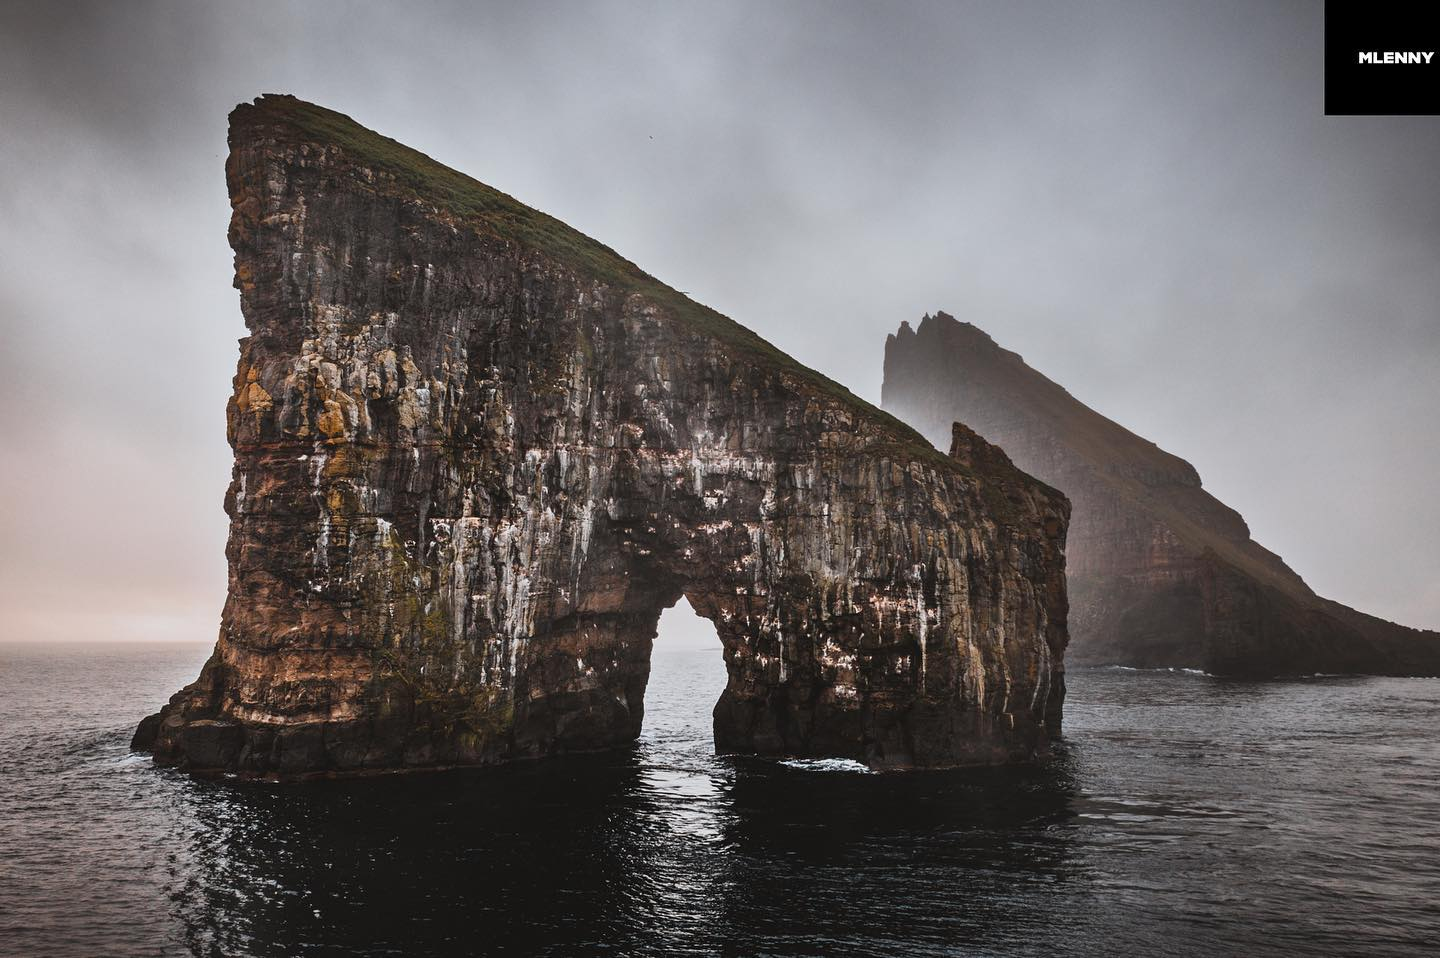 Drangarnir Rocks, Vagar Island, Faroe Islands